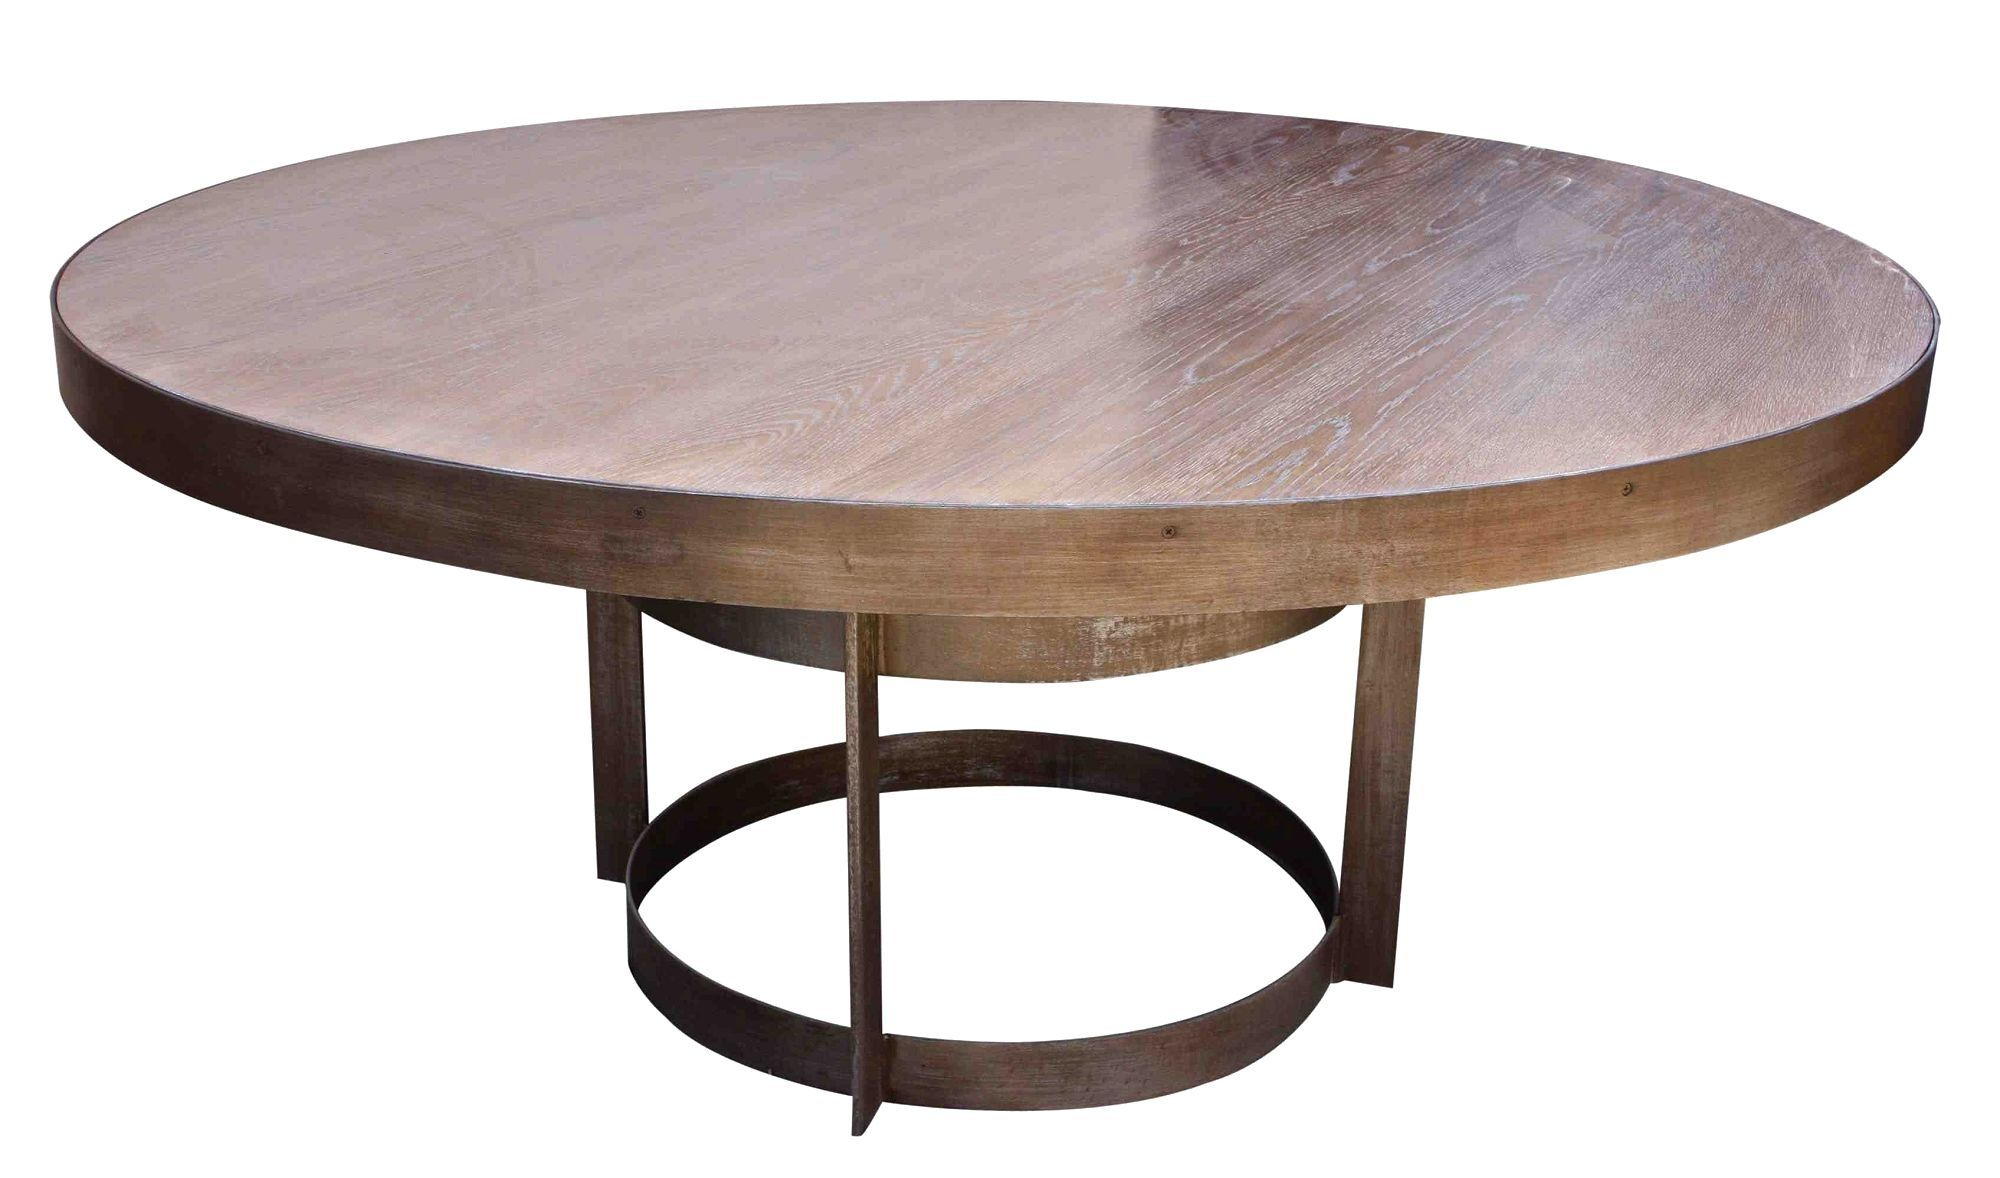 Round Dining Table With Extensions Round Dining Table With Extension Modern Http Argharts